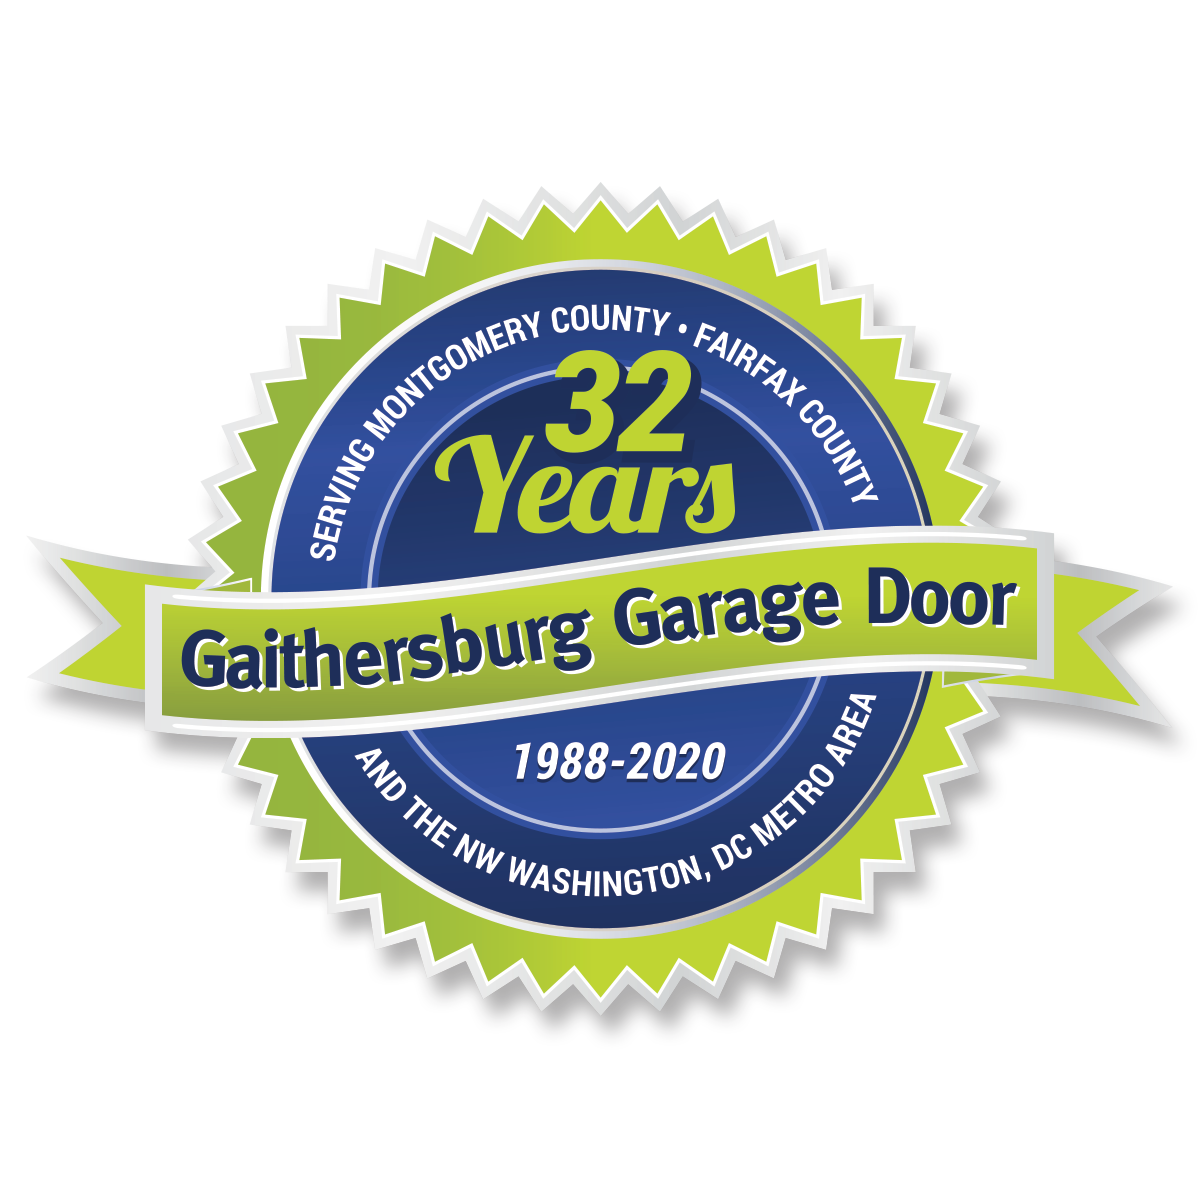 Gaithersburg Garage Door Inc